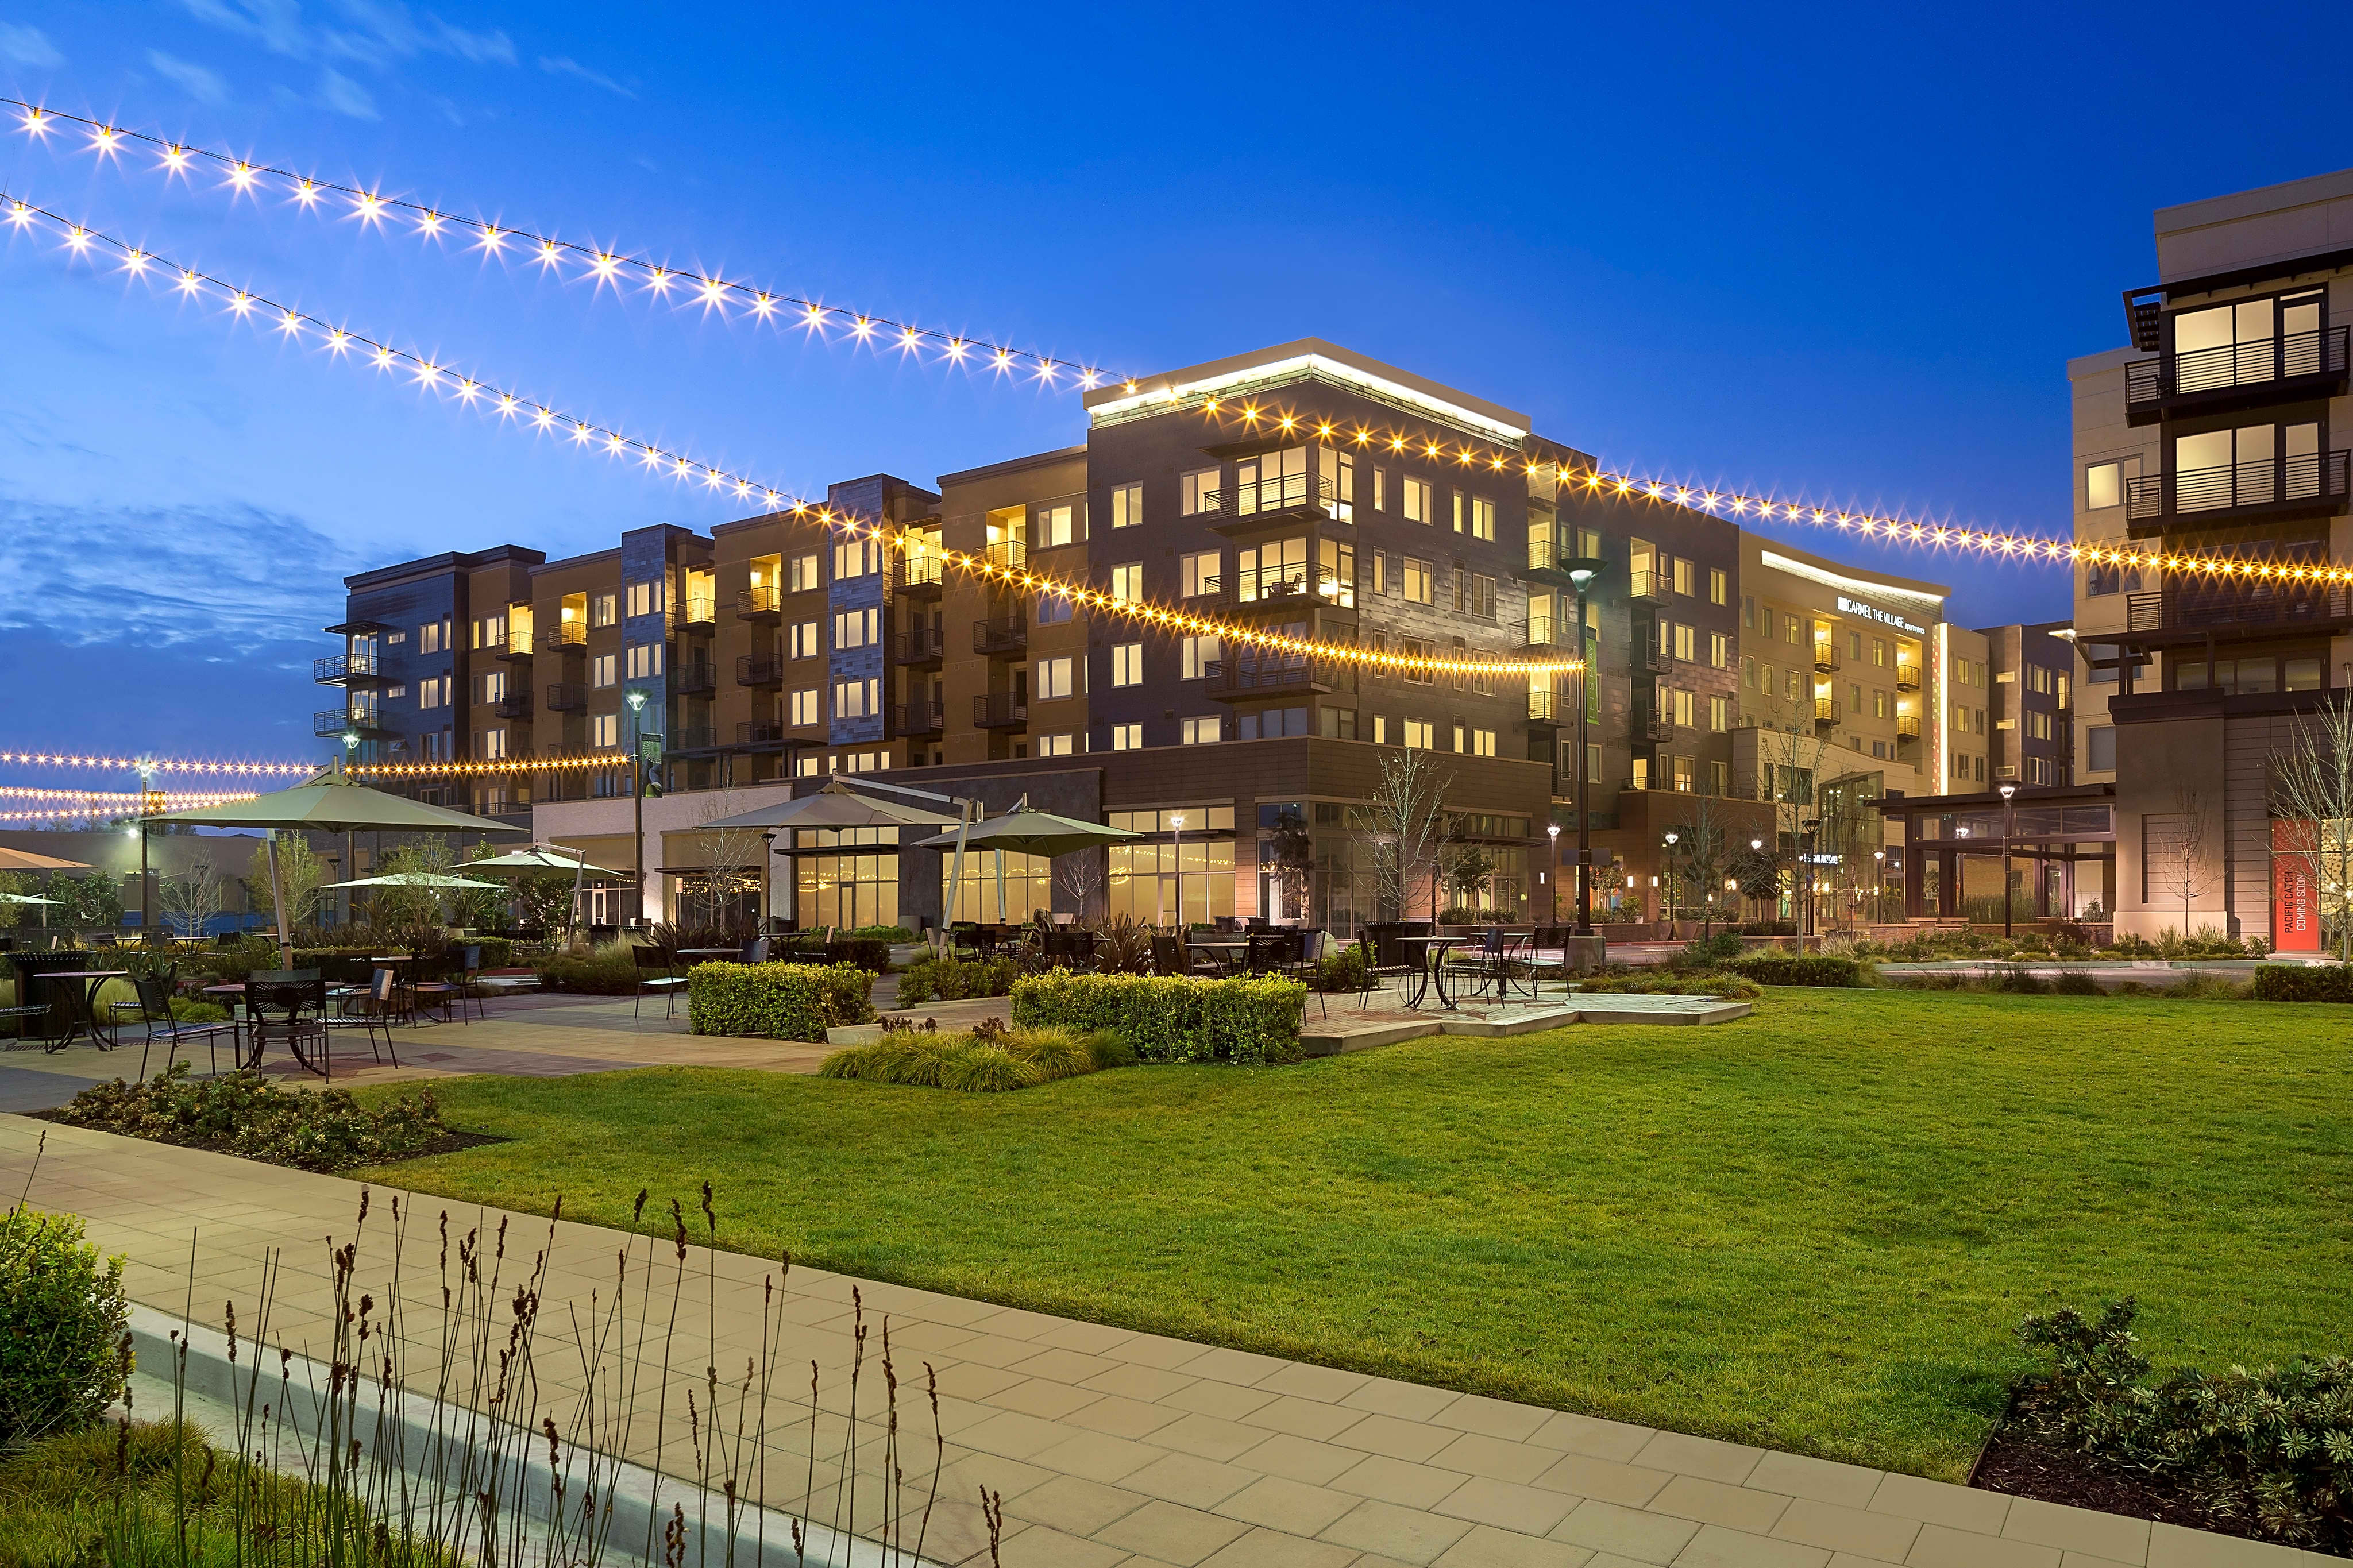 Carmel The Village Apartments - Mountain View, CA 94040